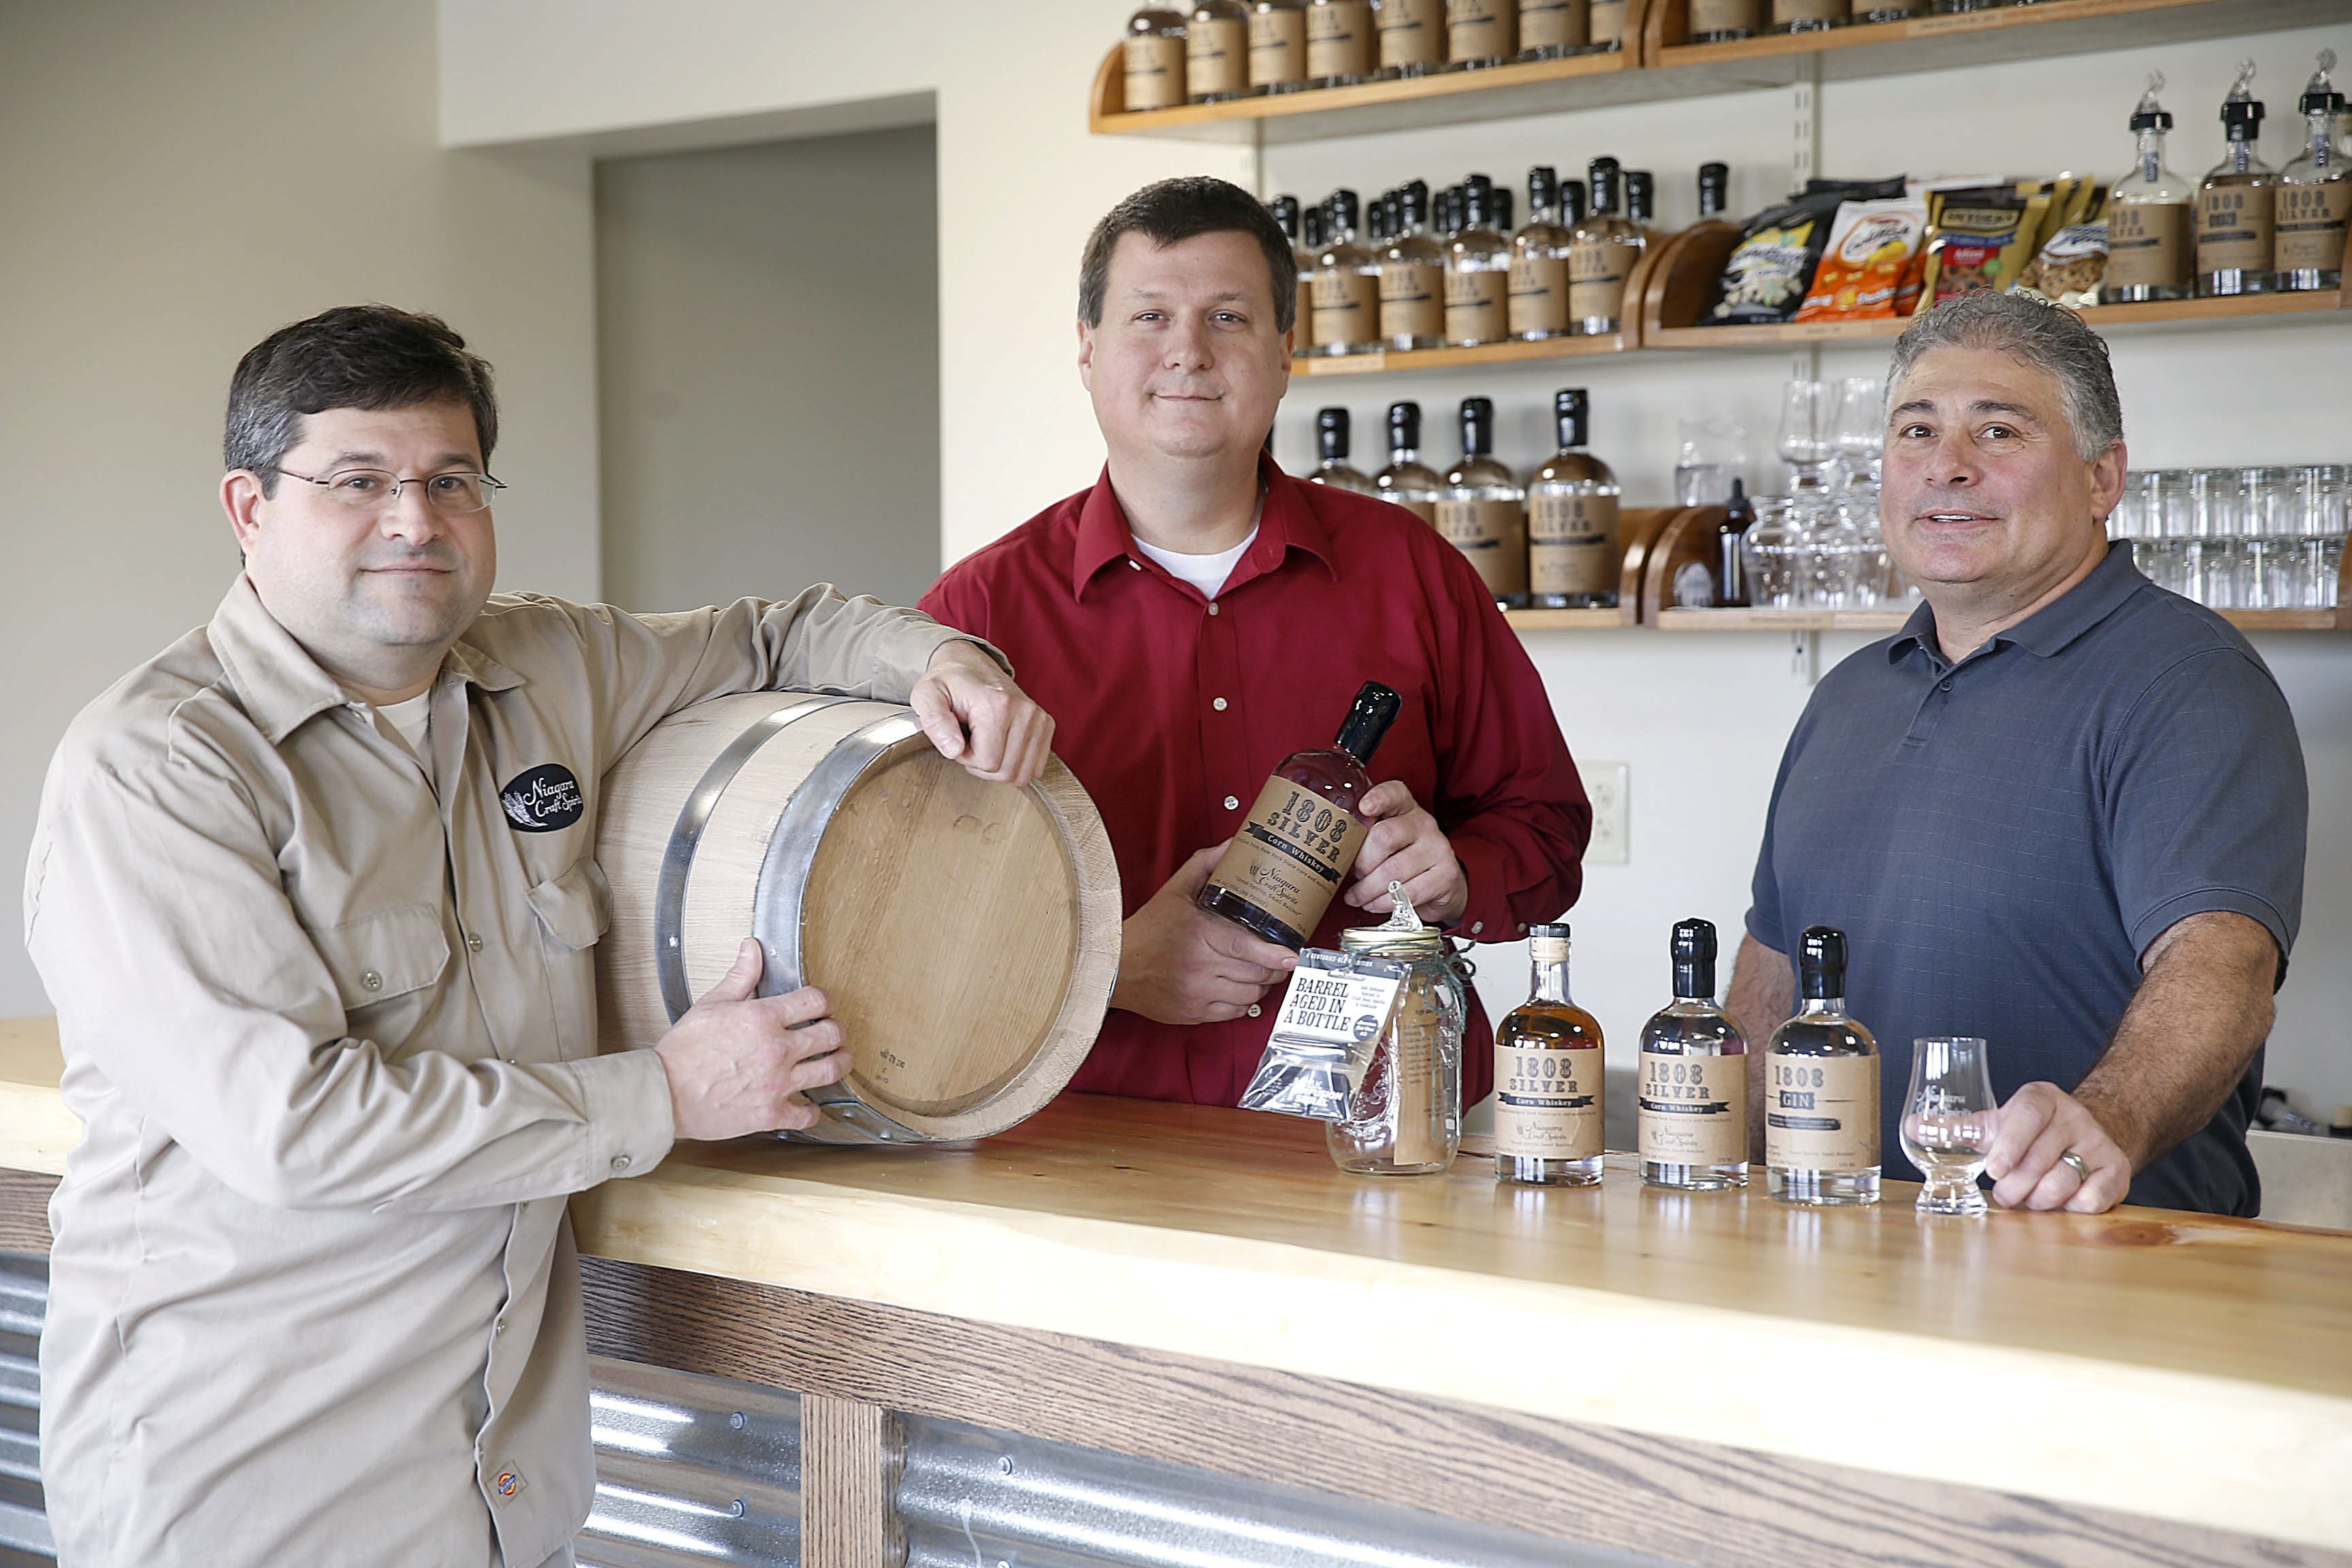 """From left, Keith Curtachio, Todd Snyder and Joe Nardecchia put their award-winning homebrewing skills to work in creating Niagara Craft Spirits Distillery and Tasting Room, where the motto is """"Great Spirits, Small Batches."""""""